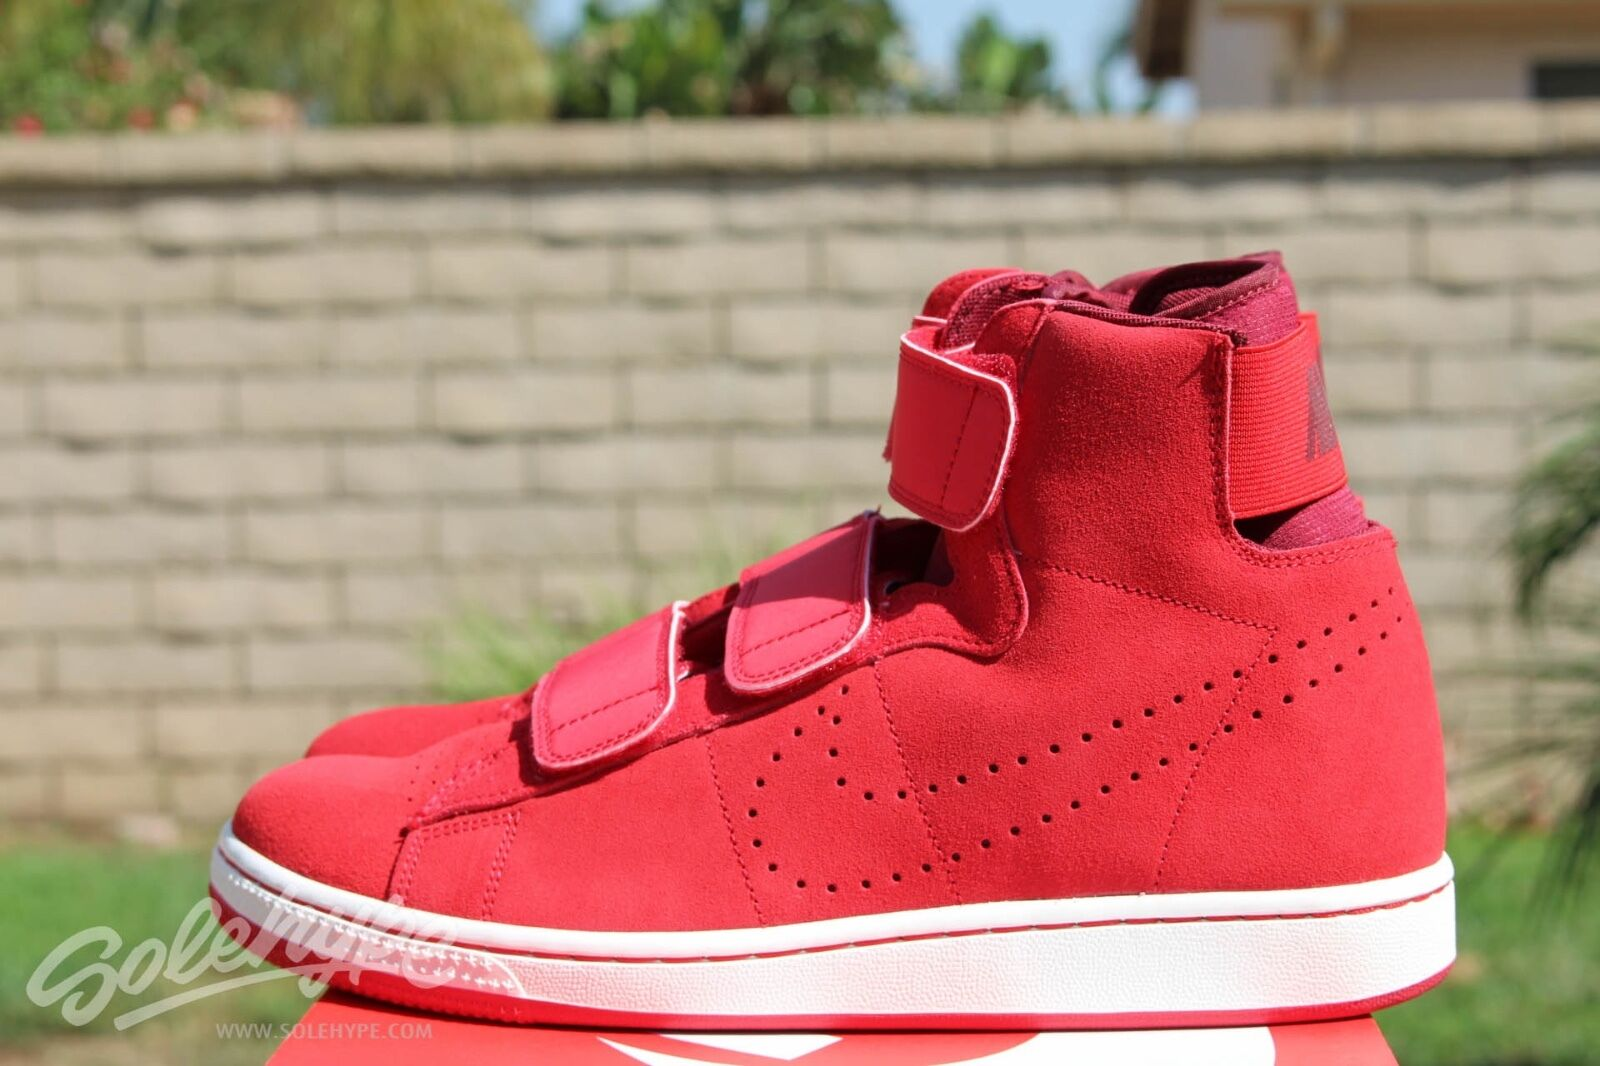 NIKE TZ - 85 SZ 11 GAME RED TEAM RED SAIL 749628 600